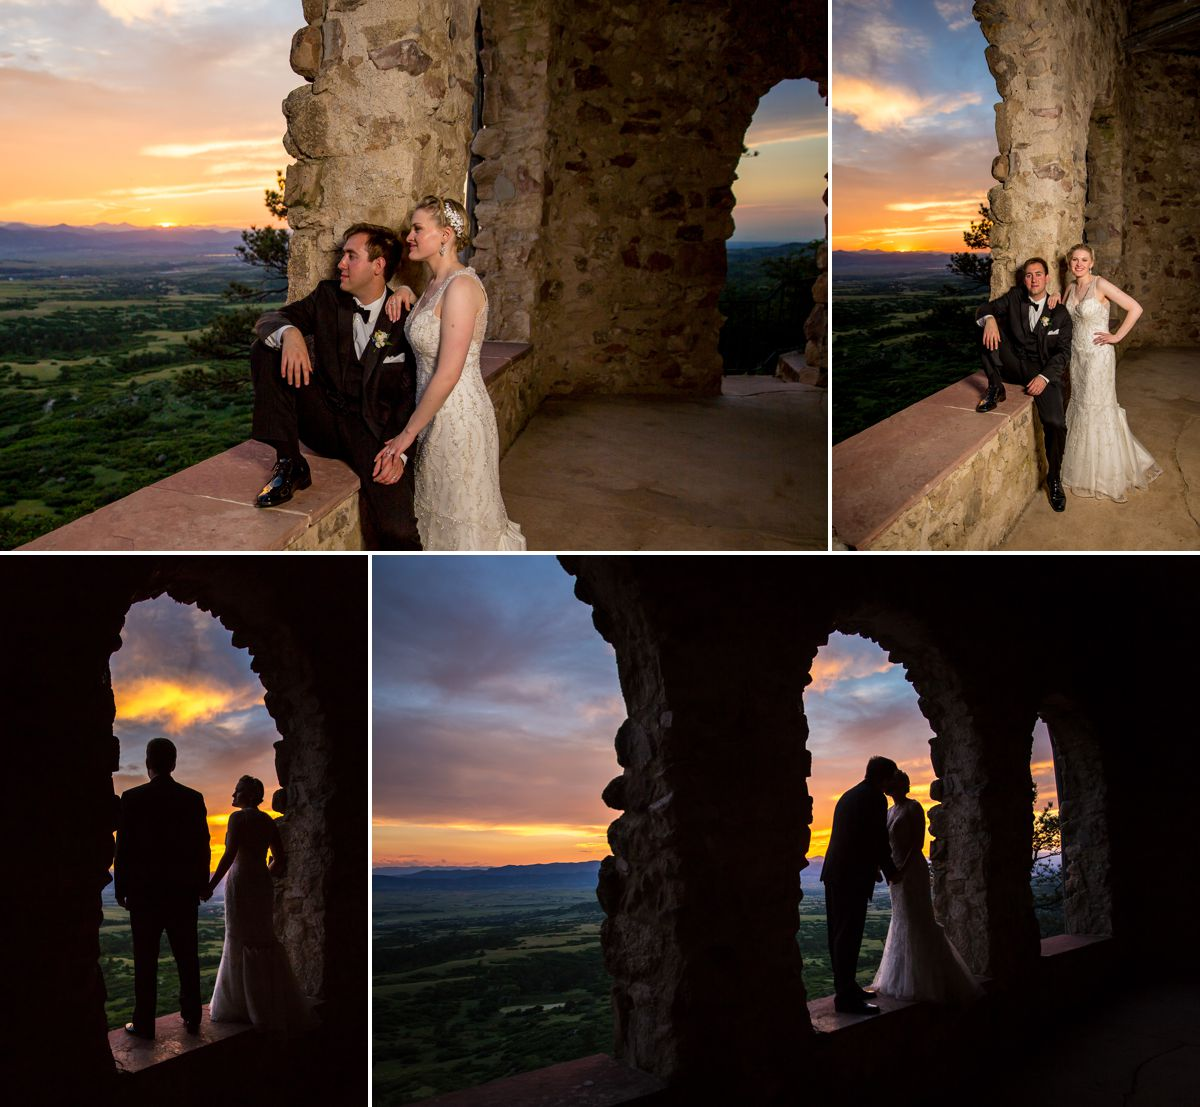 Again, how amazing are these views and the Bronco Sunset every bride prays for...EPIC!!!